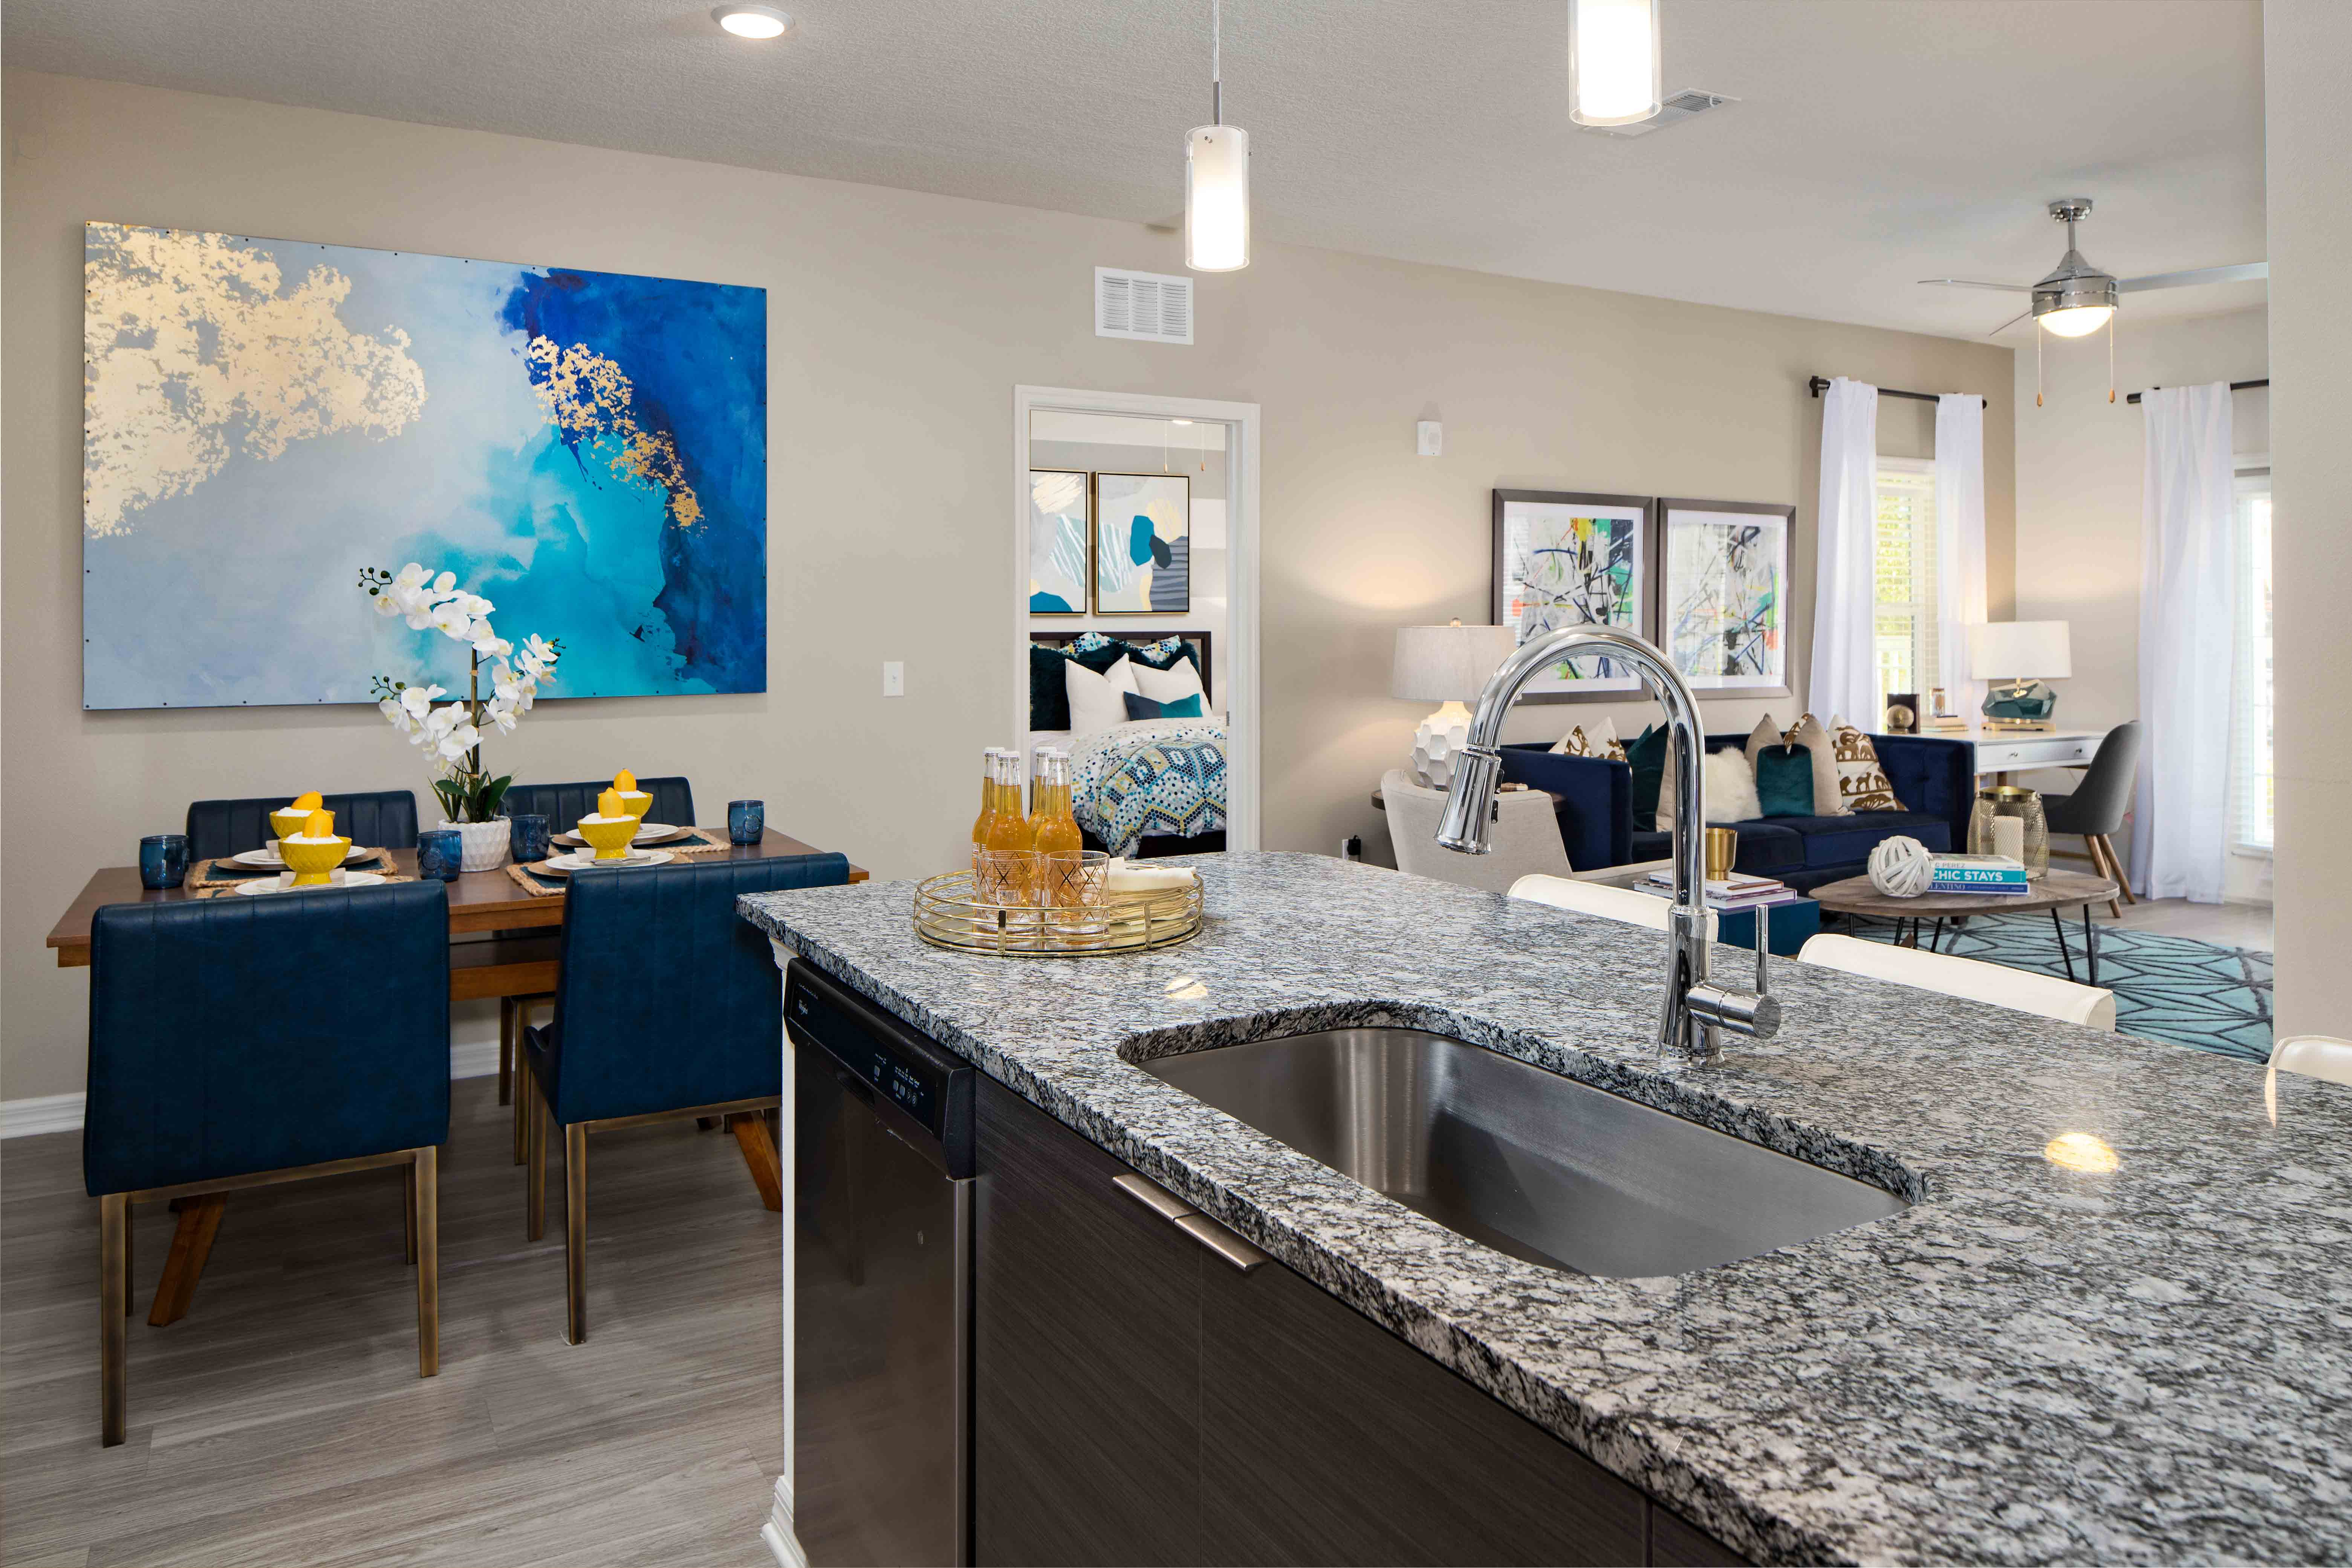 Dining Room at M South Apartments in Tampa, Florida